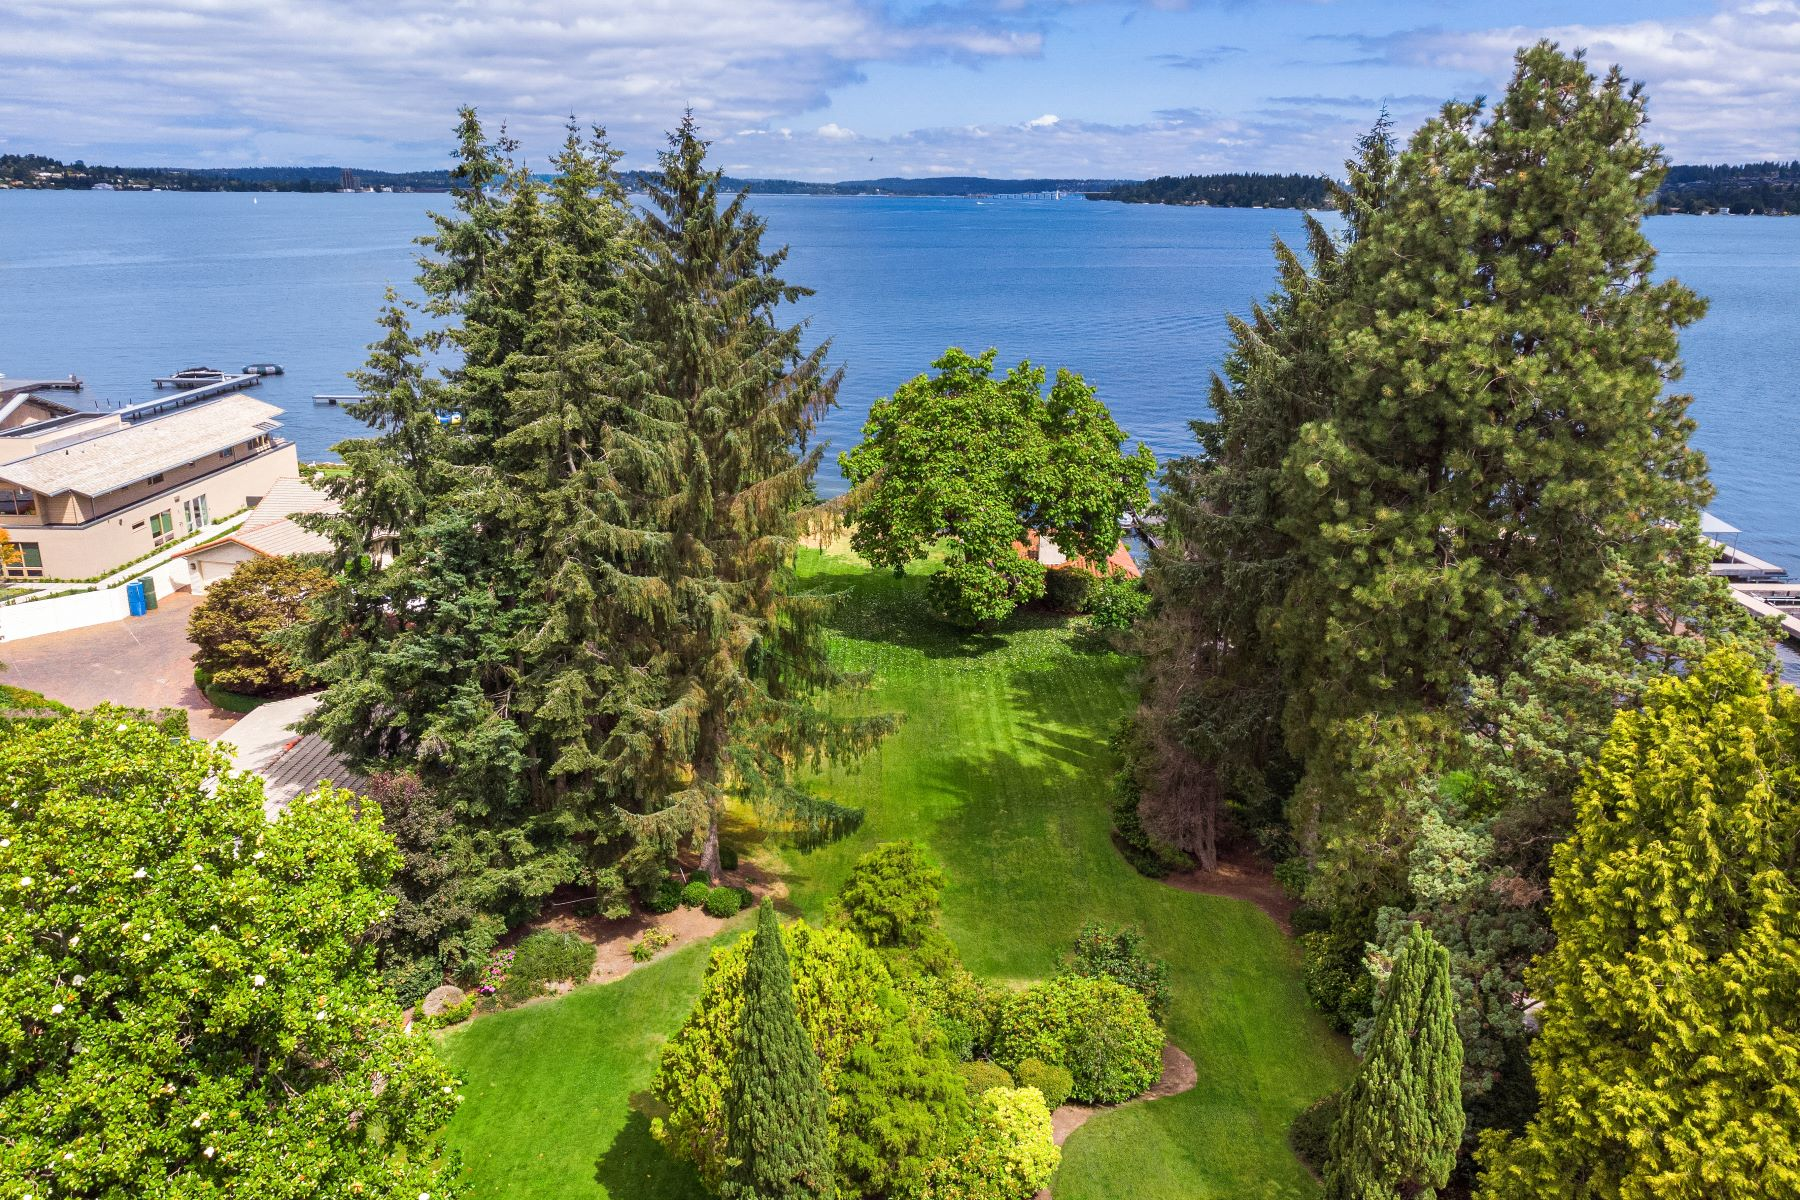 Land for Sale at 6024 SE 22nd St, Mercer Island, WA 98040 6024 SE 22nd St Mercer Island, Washington 98040 United States